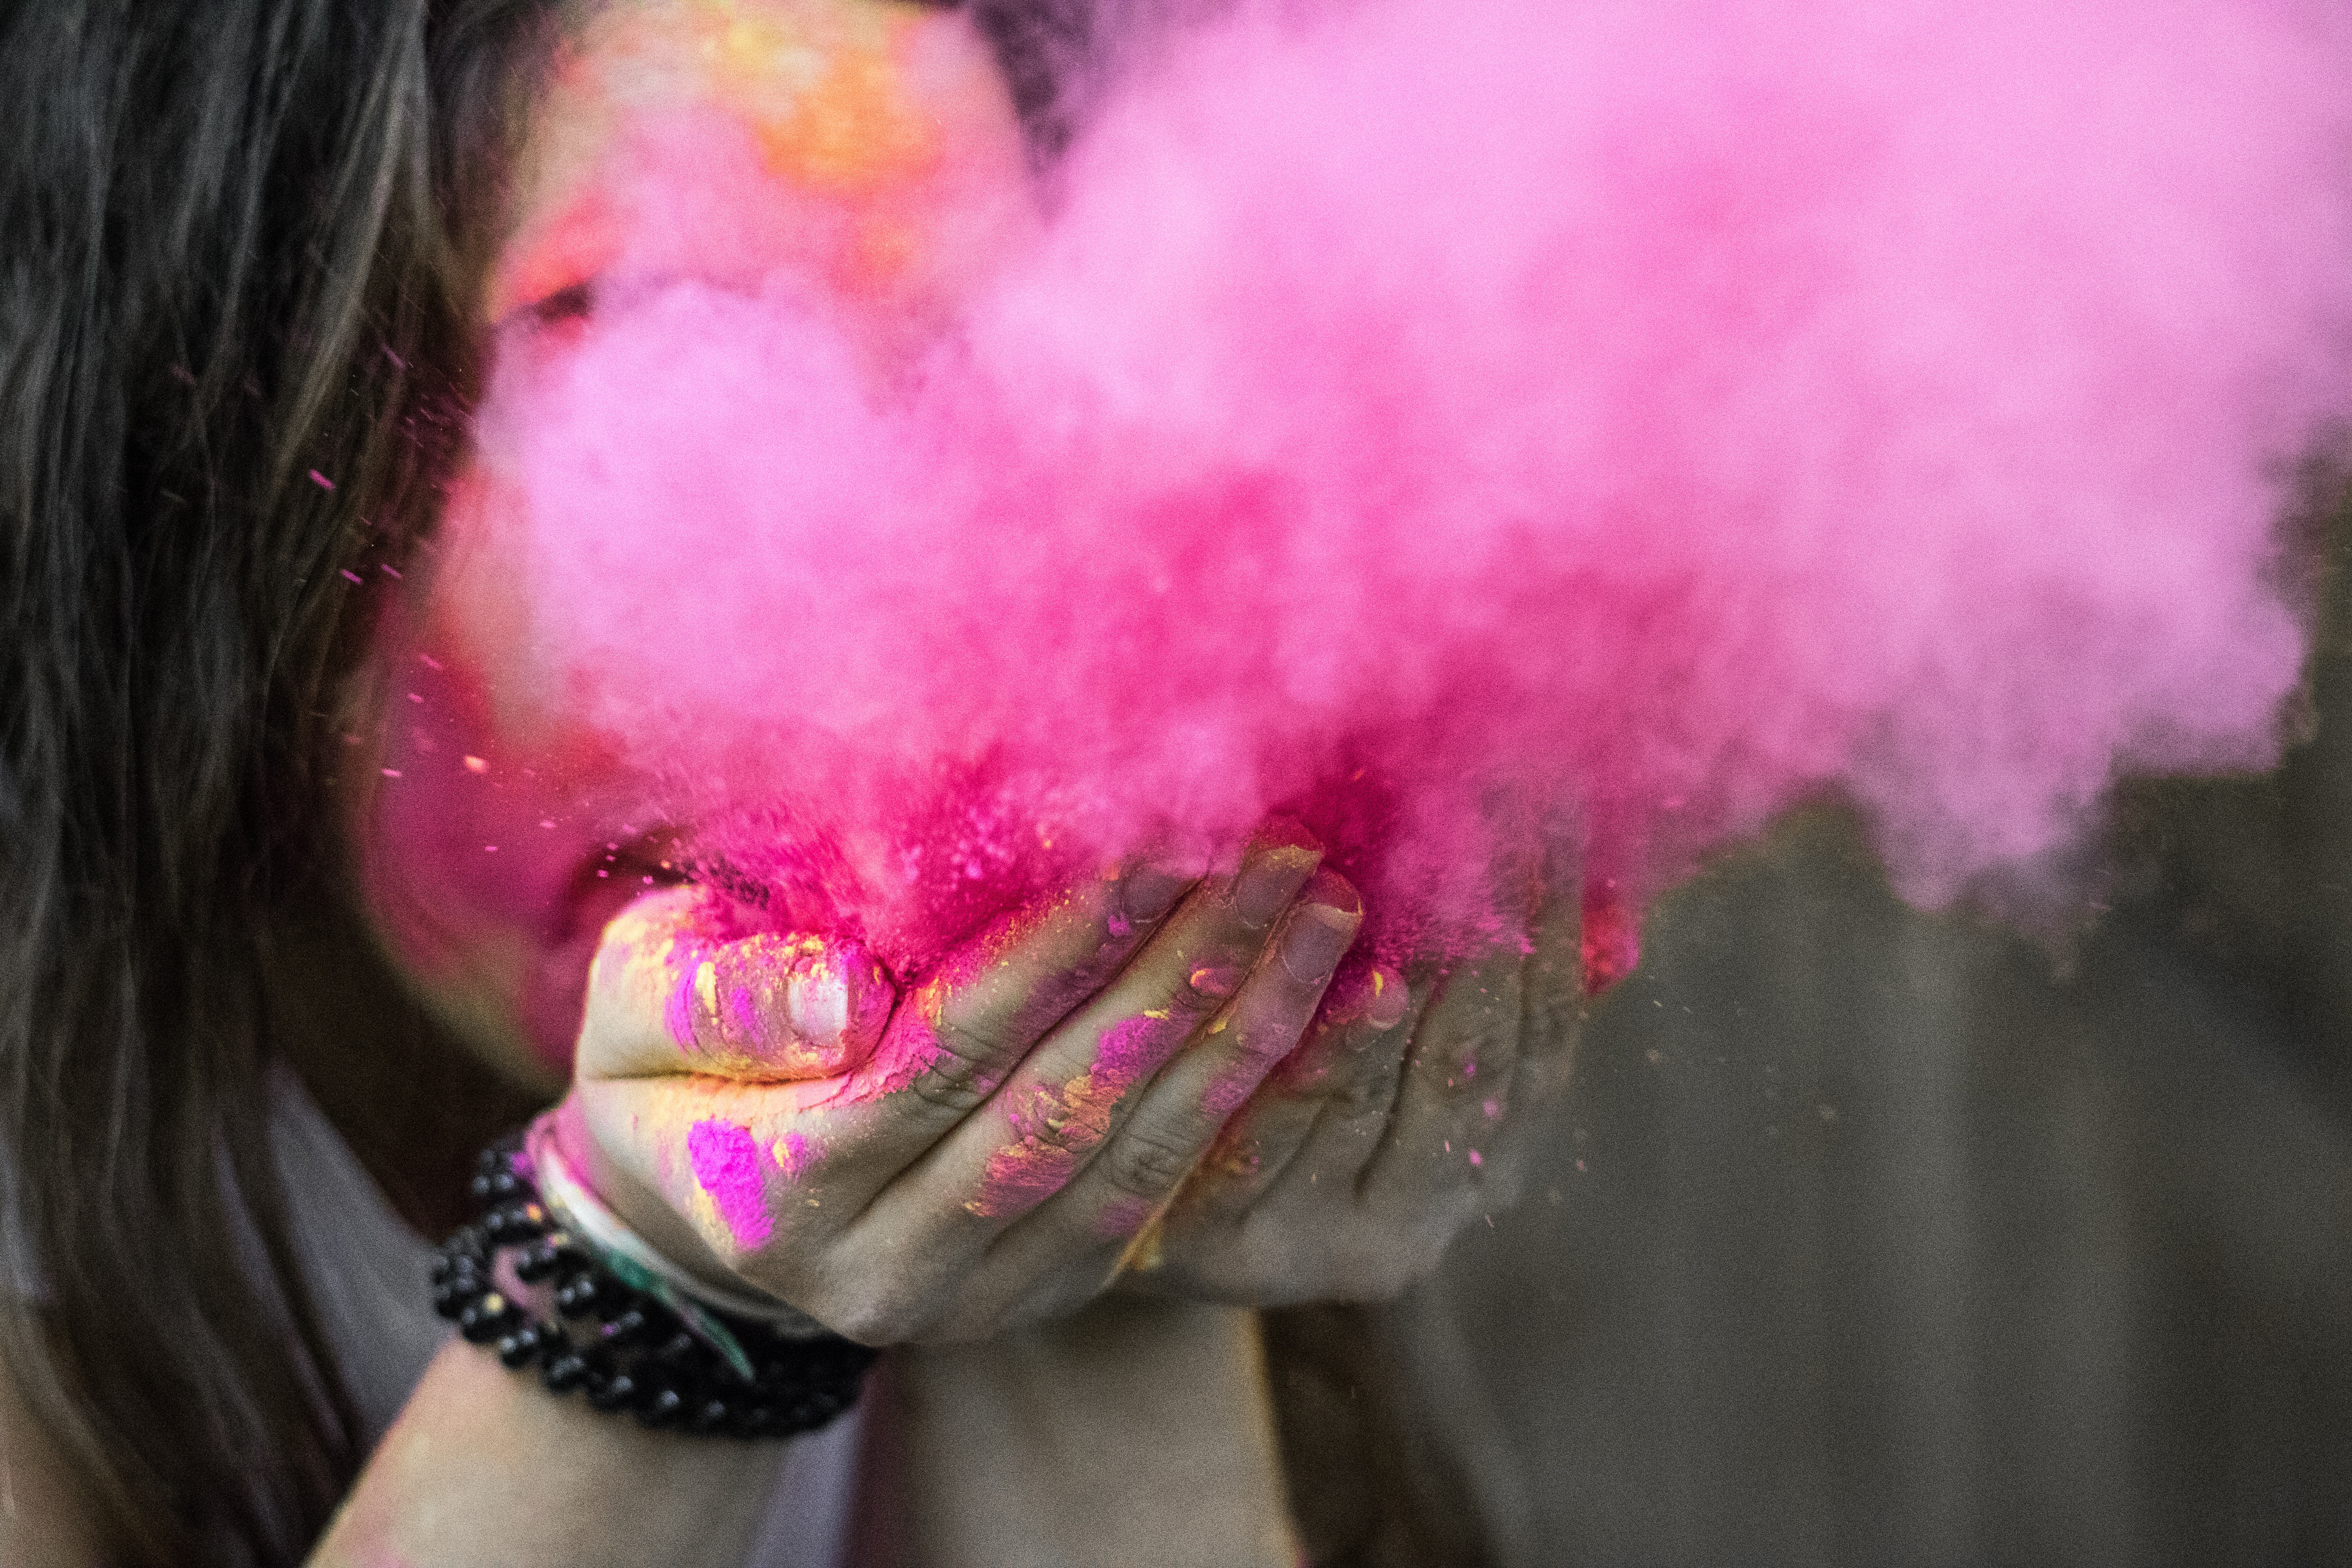 Shallow Focus Photograph of Woman Blowing Pink Powder, Adult, Outdoors, Woman, Wear, HQ Photo